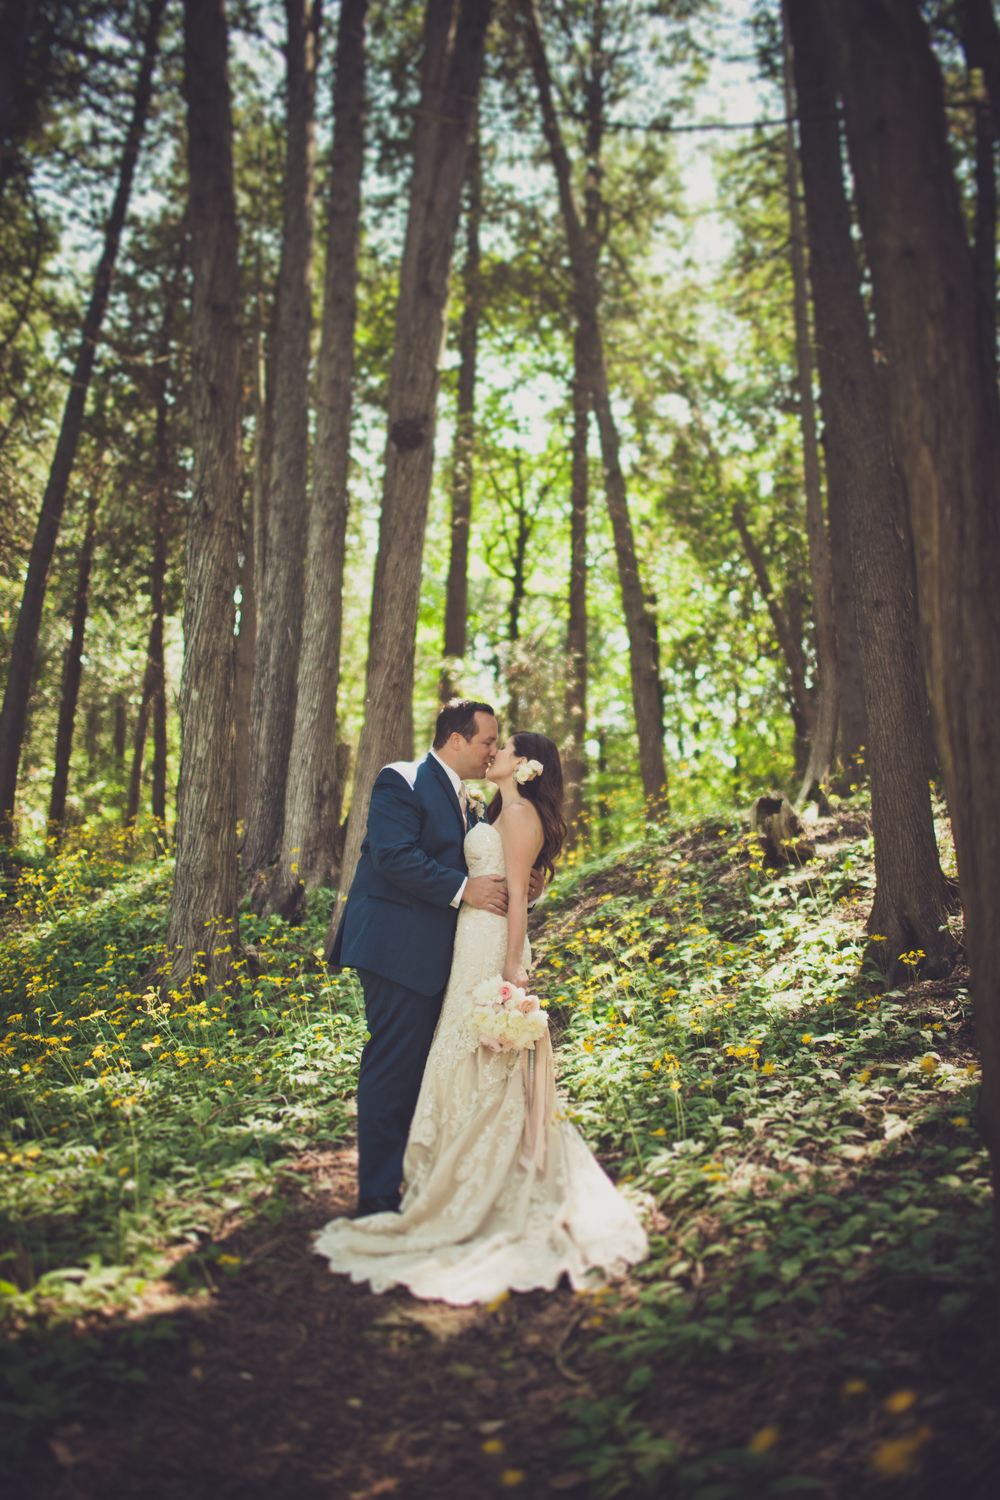 Kim & Paul | Mackinac Island